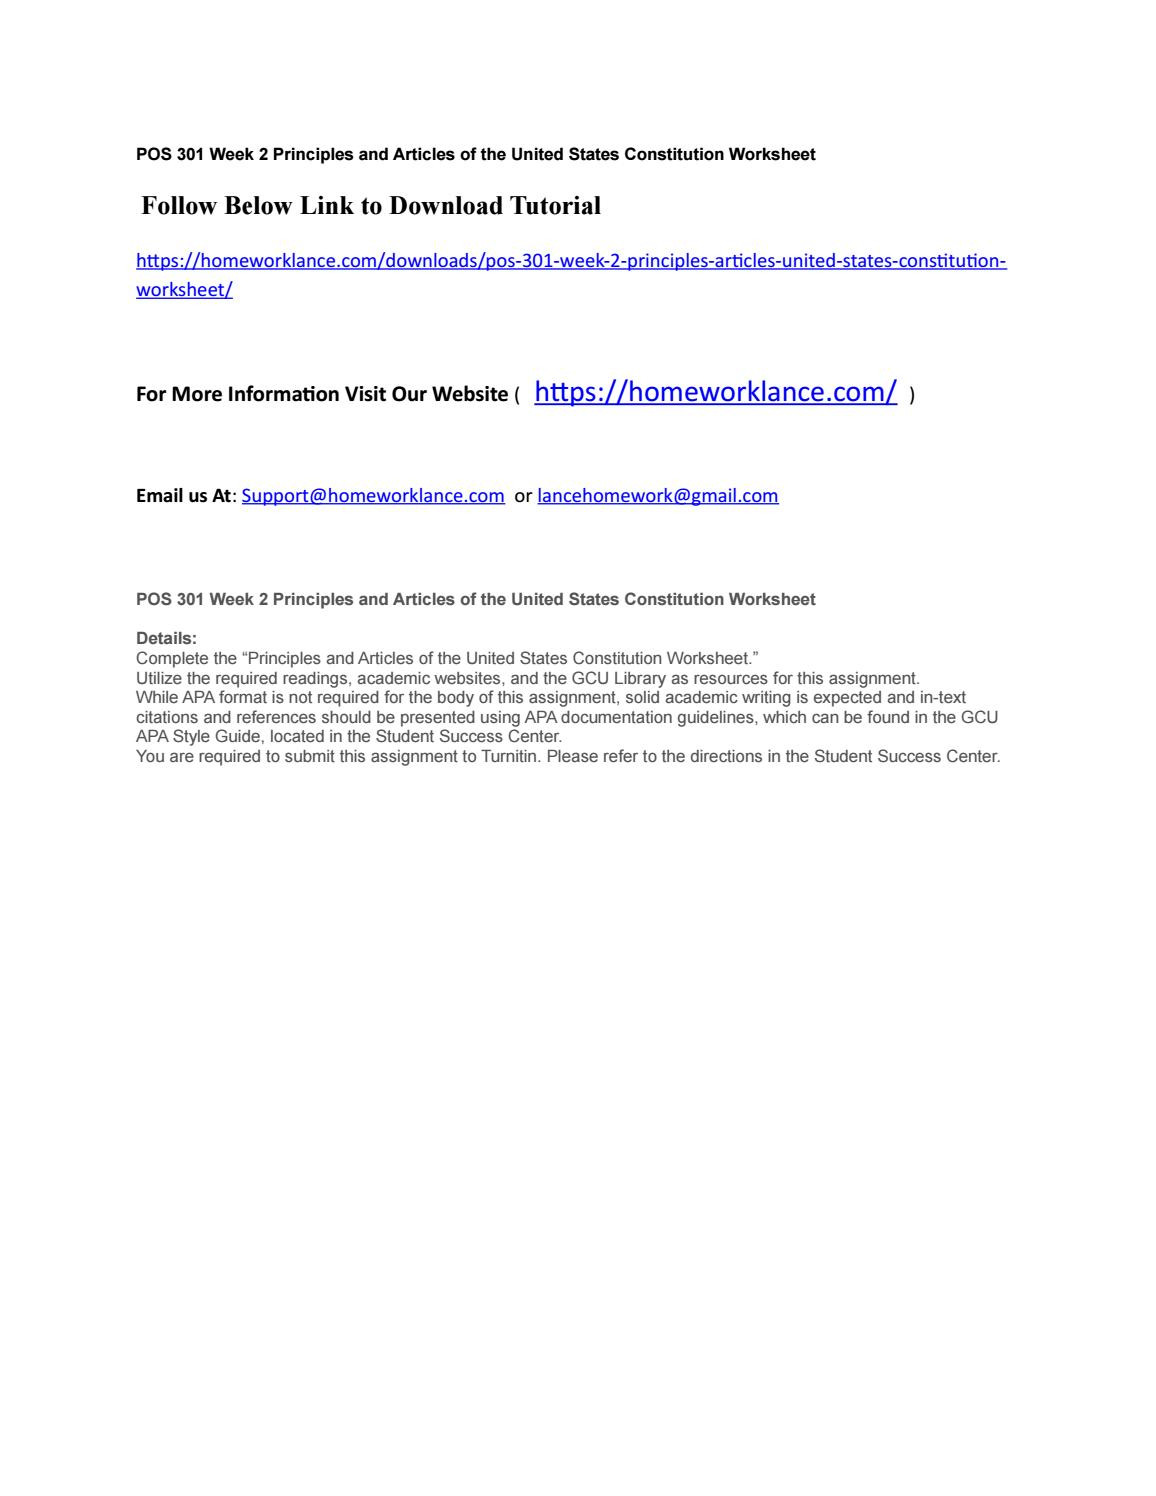 United States Constitution Worksheet Pos 301 Week 2 Principles and Articles Of the United States